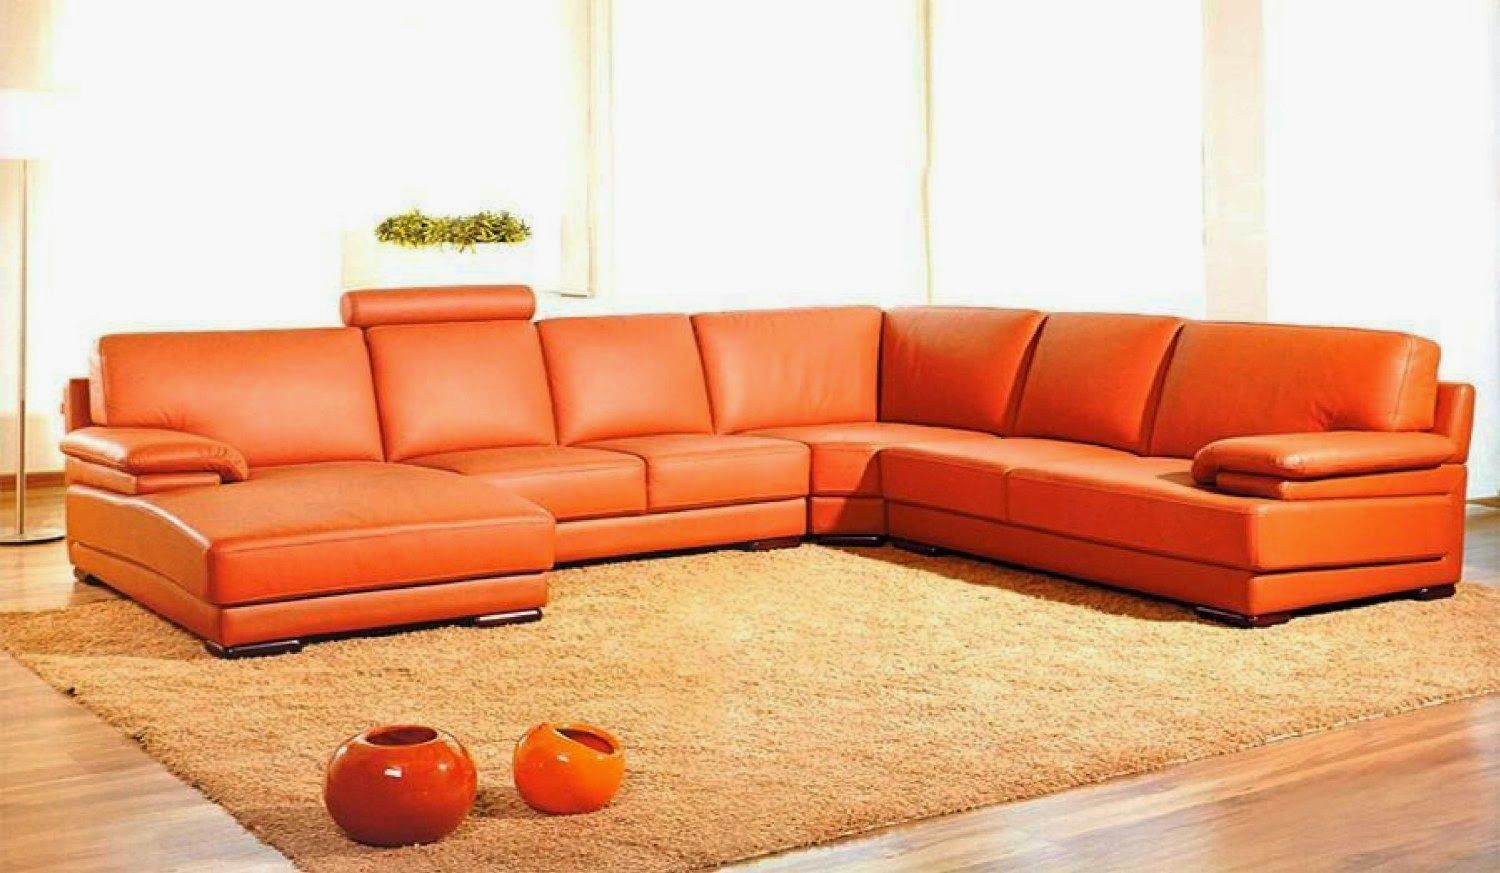 Tan Leather Living Room Set Good Looking Orange Leather Sofas You Must Have Charming Ushaped